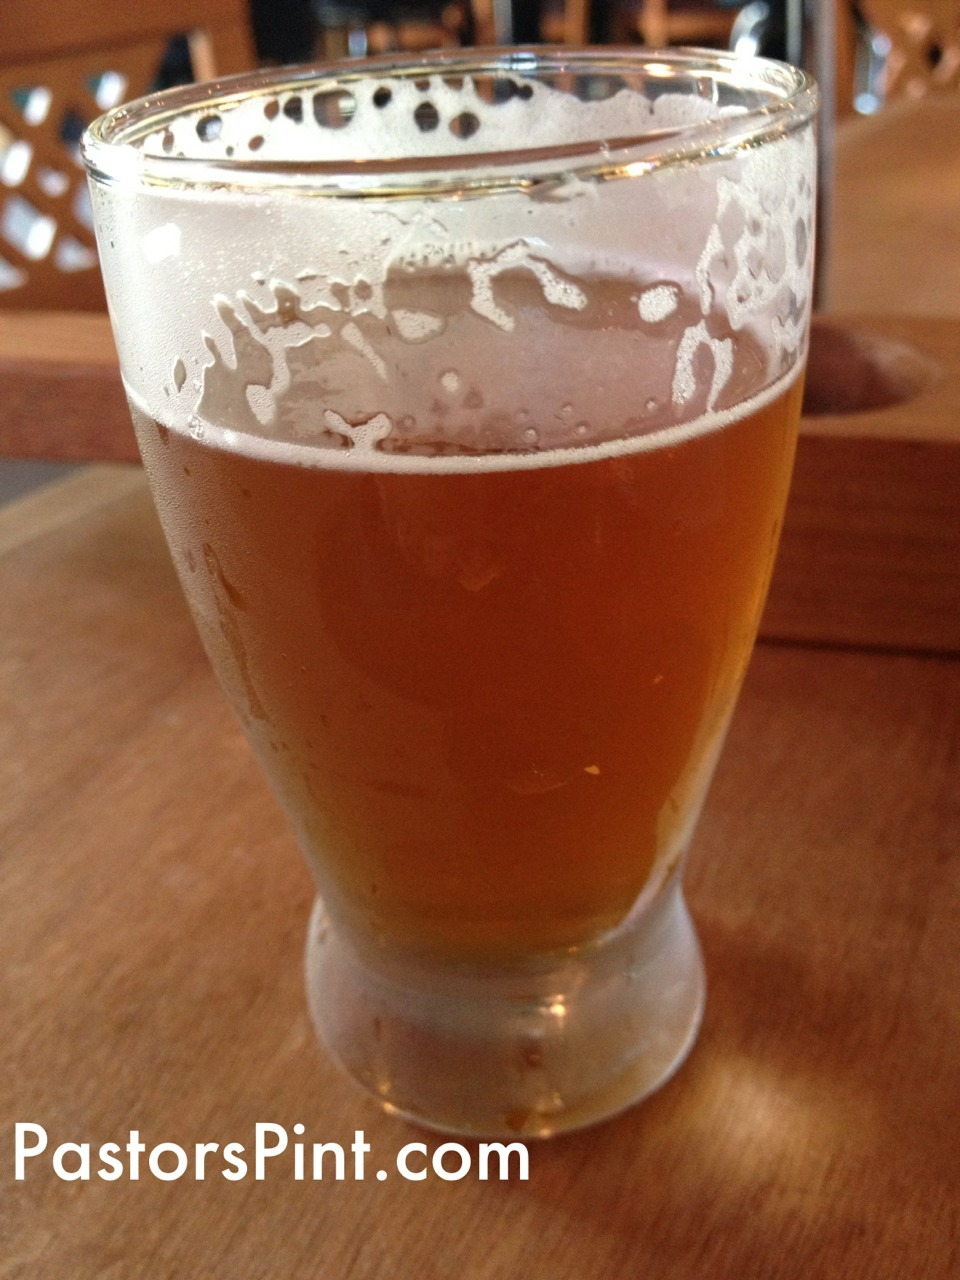 India Pale Ale -Yards Brewing Co.  Citrus and earthy flavors from the hops.  Carmel malts balance the hops.  2 Stars